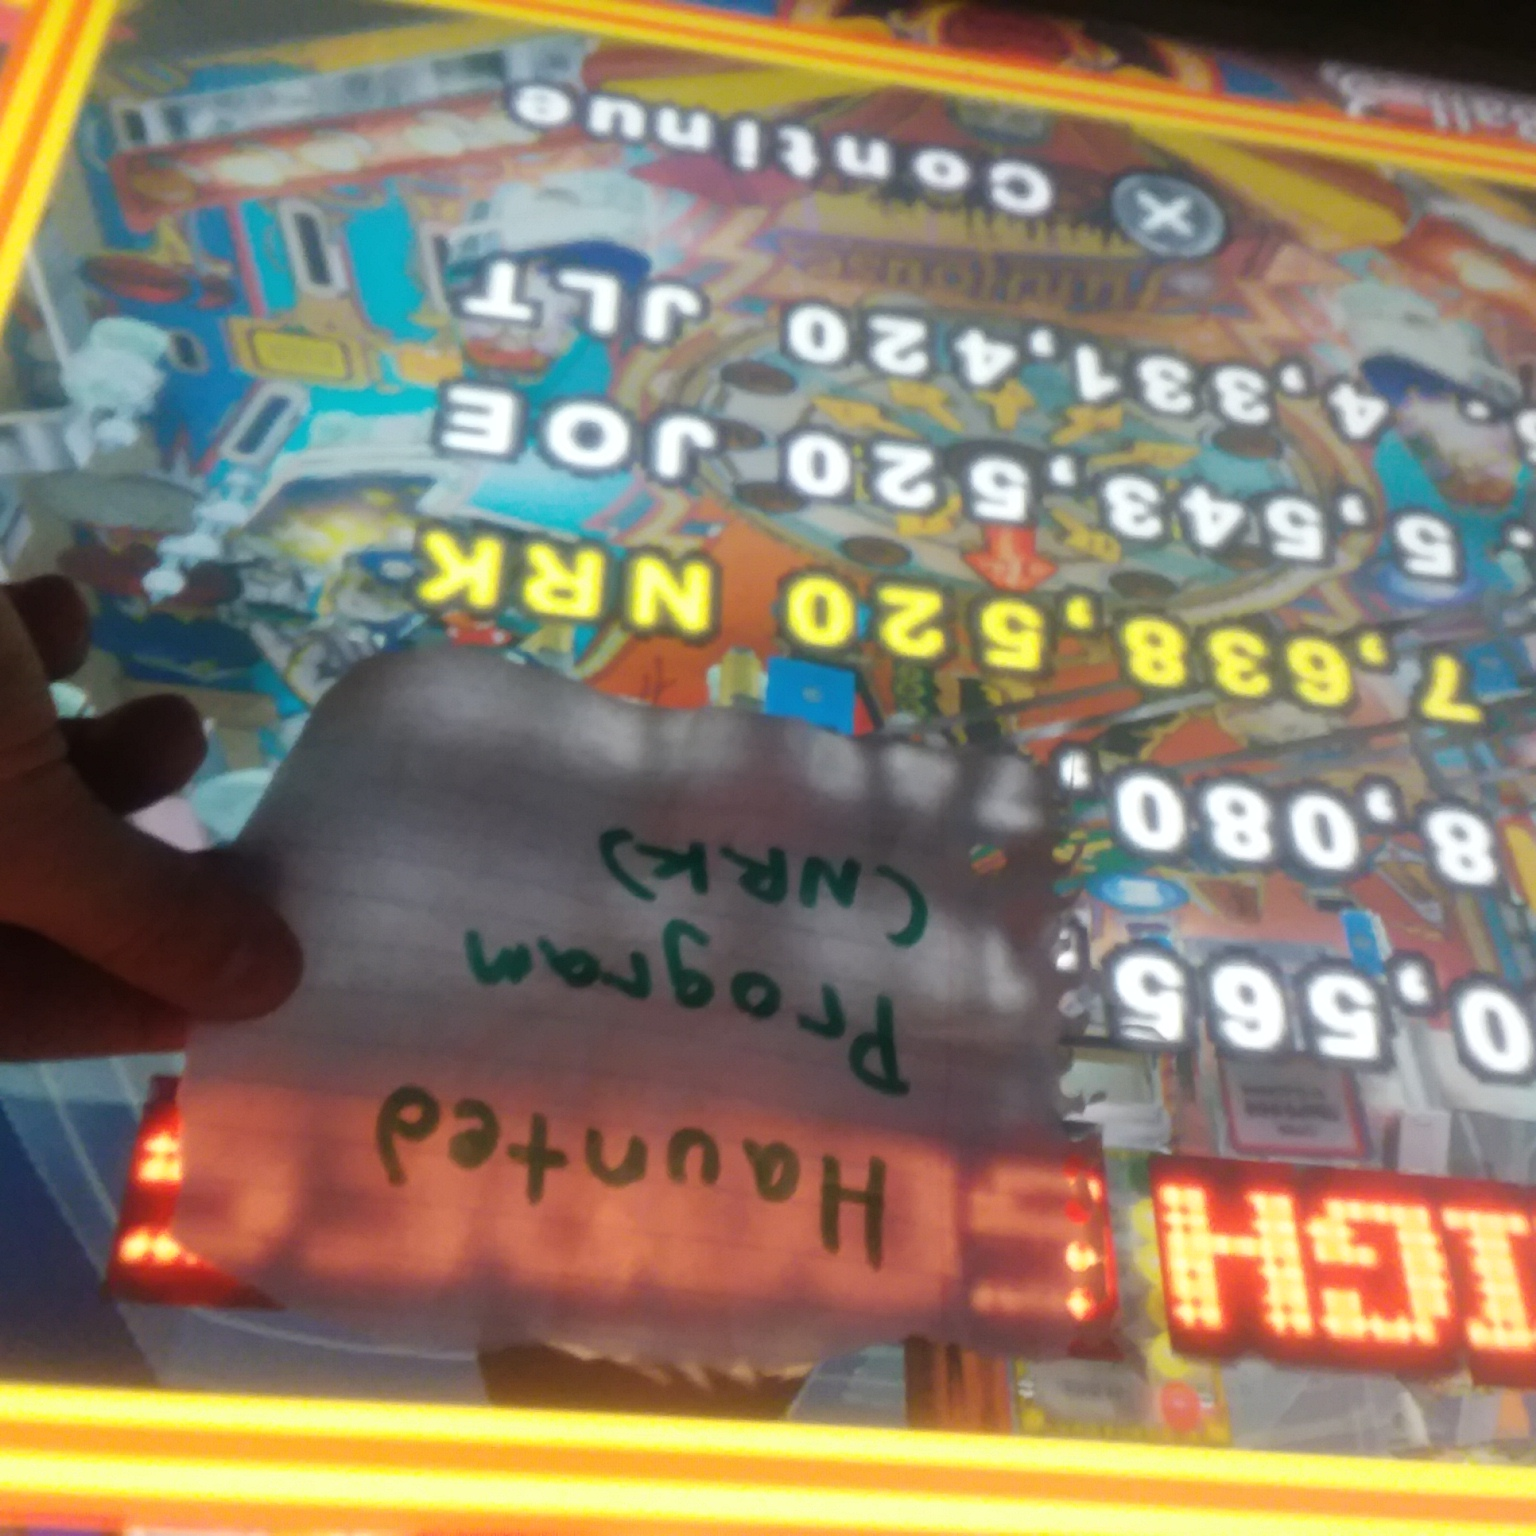 Hauntedprogram: Pinball Hall Of Fame: The Williams Collection: Funhouse (PSP Emulated) 7,638,520 points on 2020-10-28 09:10:21